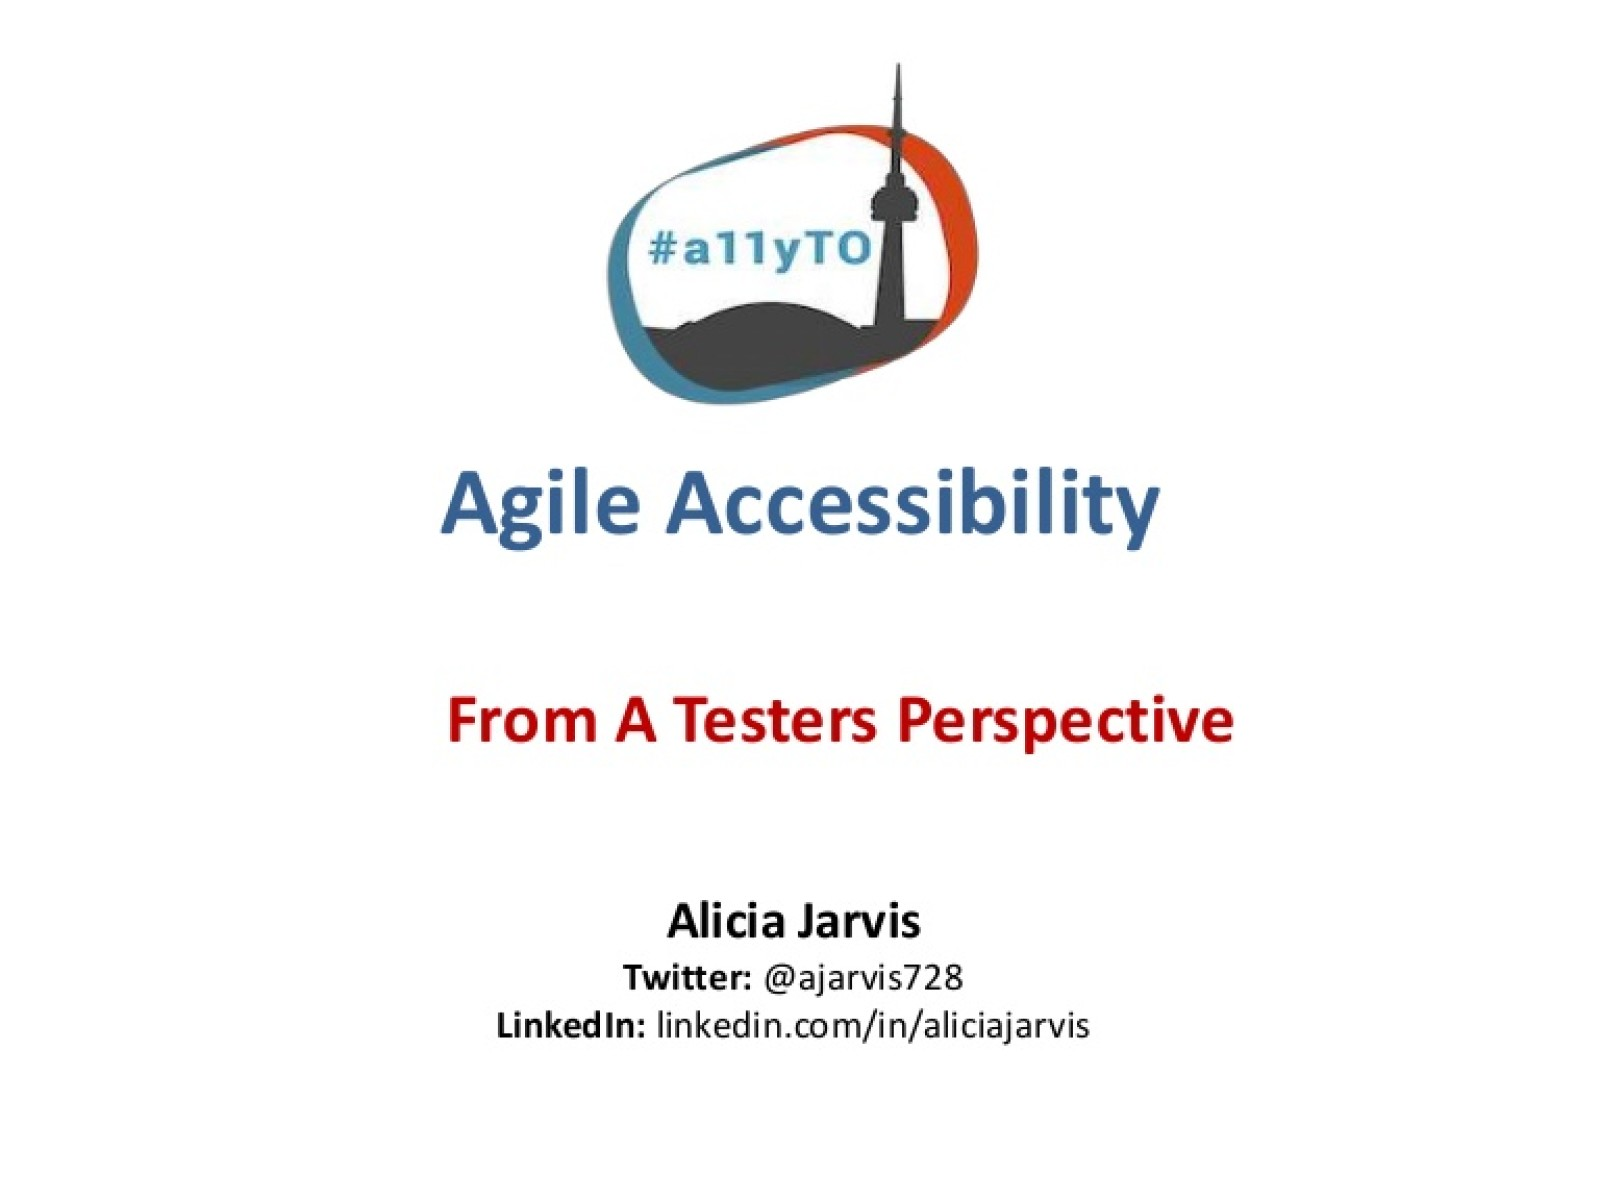 Agile Accessibility From a Testers Perspective